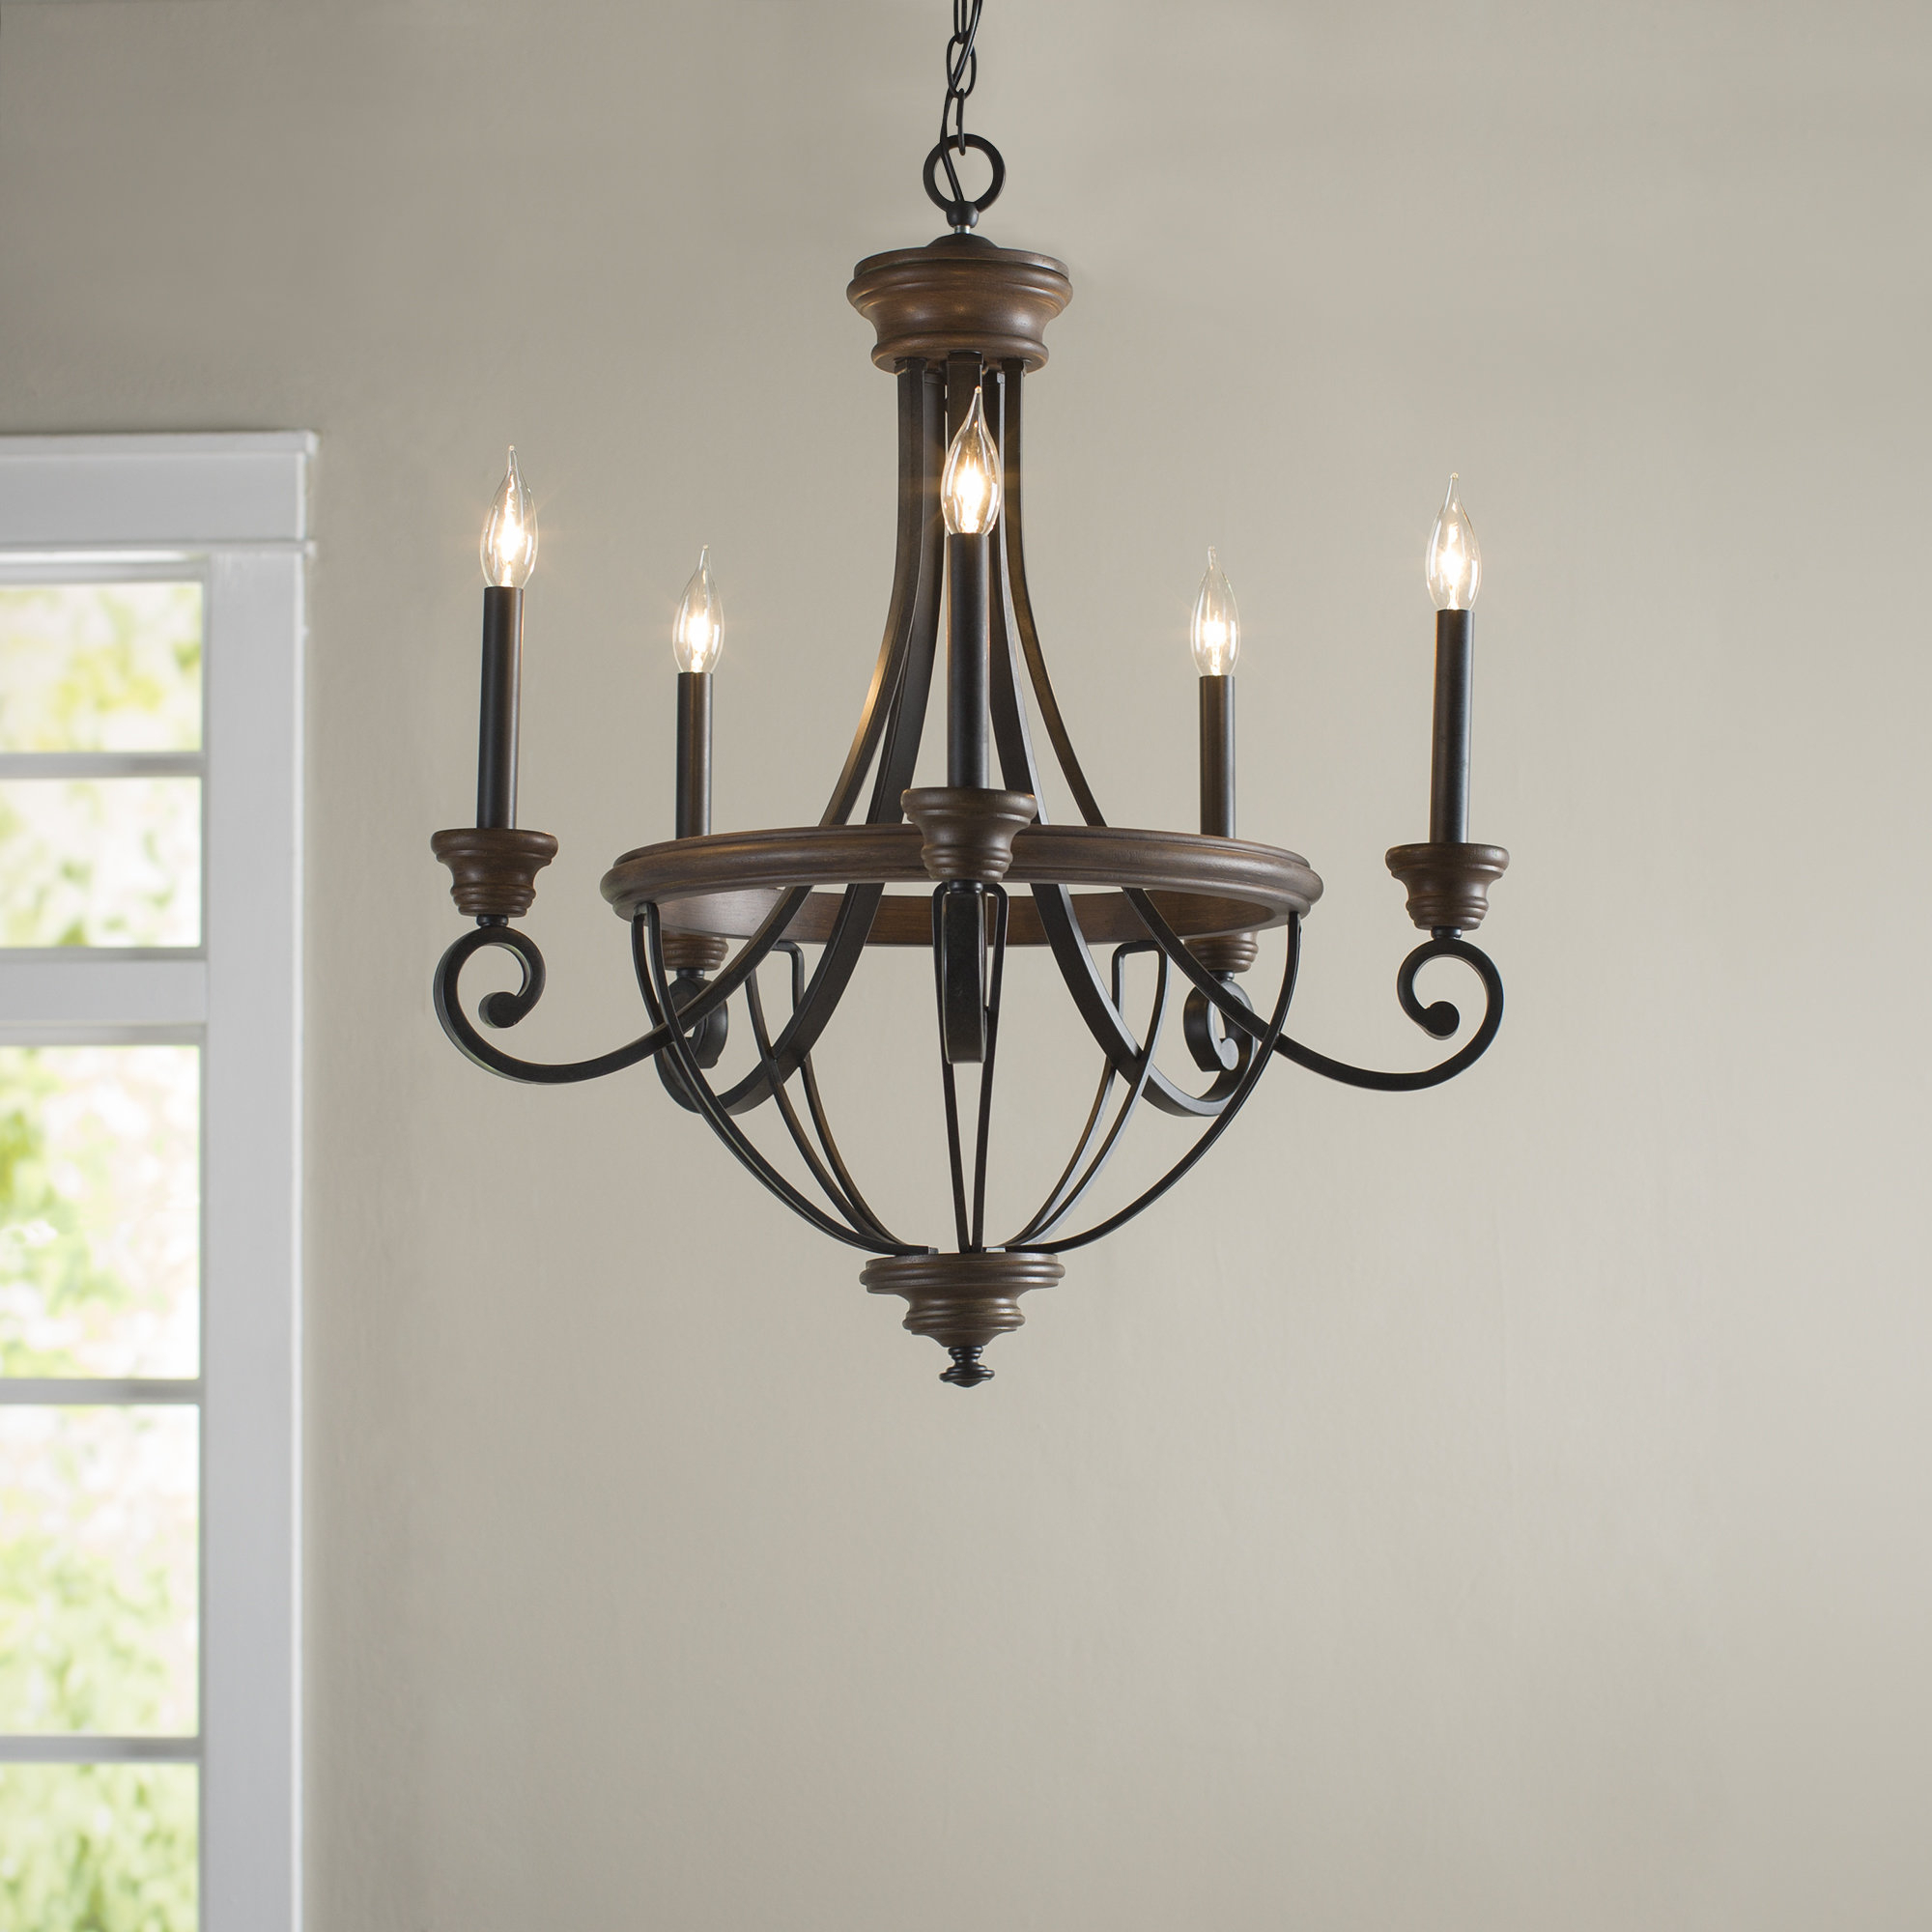 Laurel Foundry Modern Farmhouse Nanteuil 5 Light Empire Chandelier Pertaining To Recent Kenna 5 Light Empire Chandeliers (View 13 of 20)